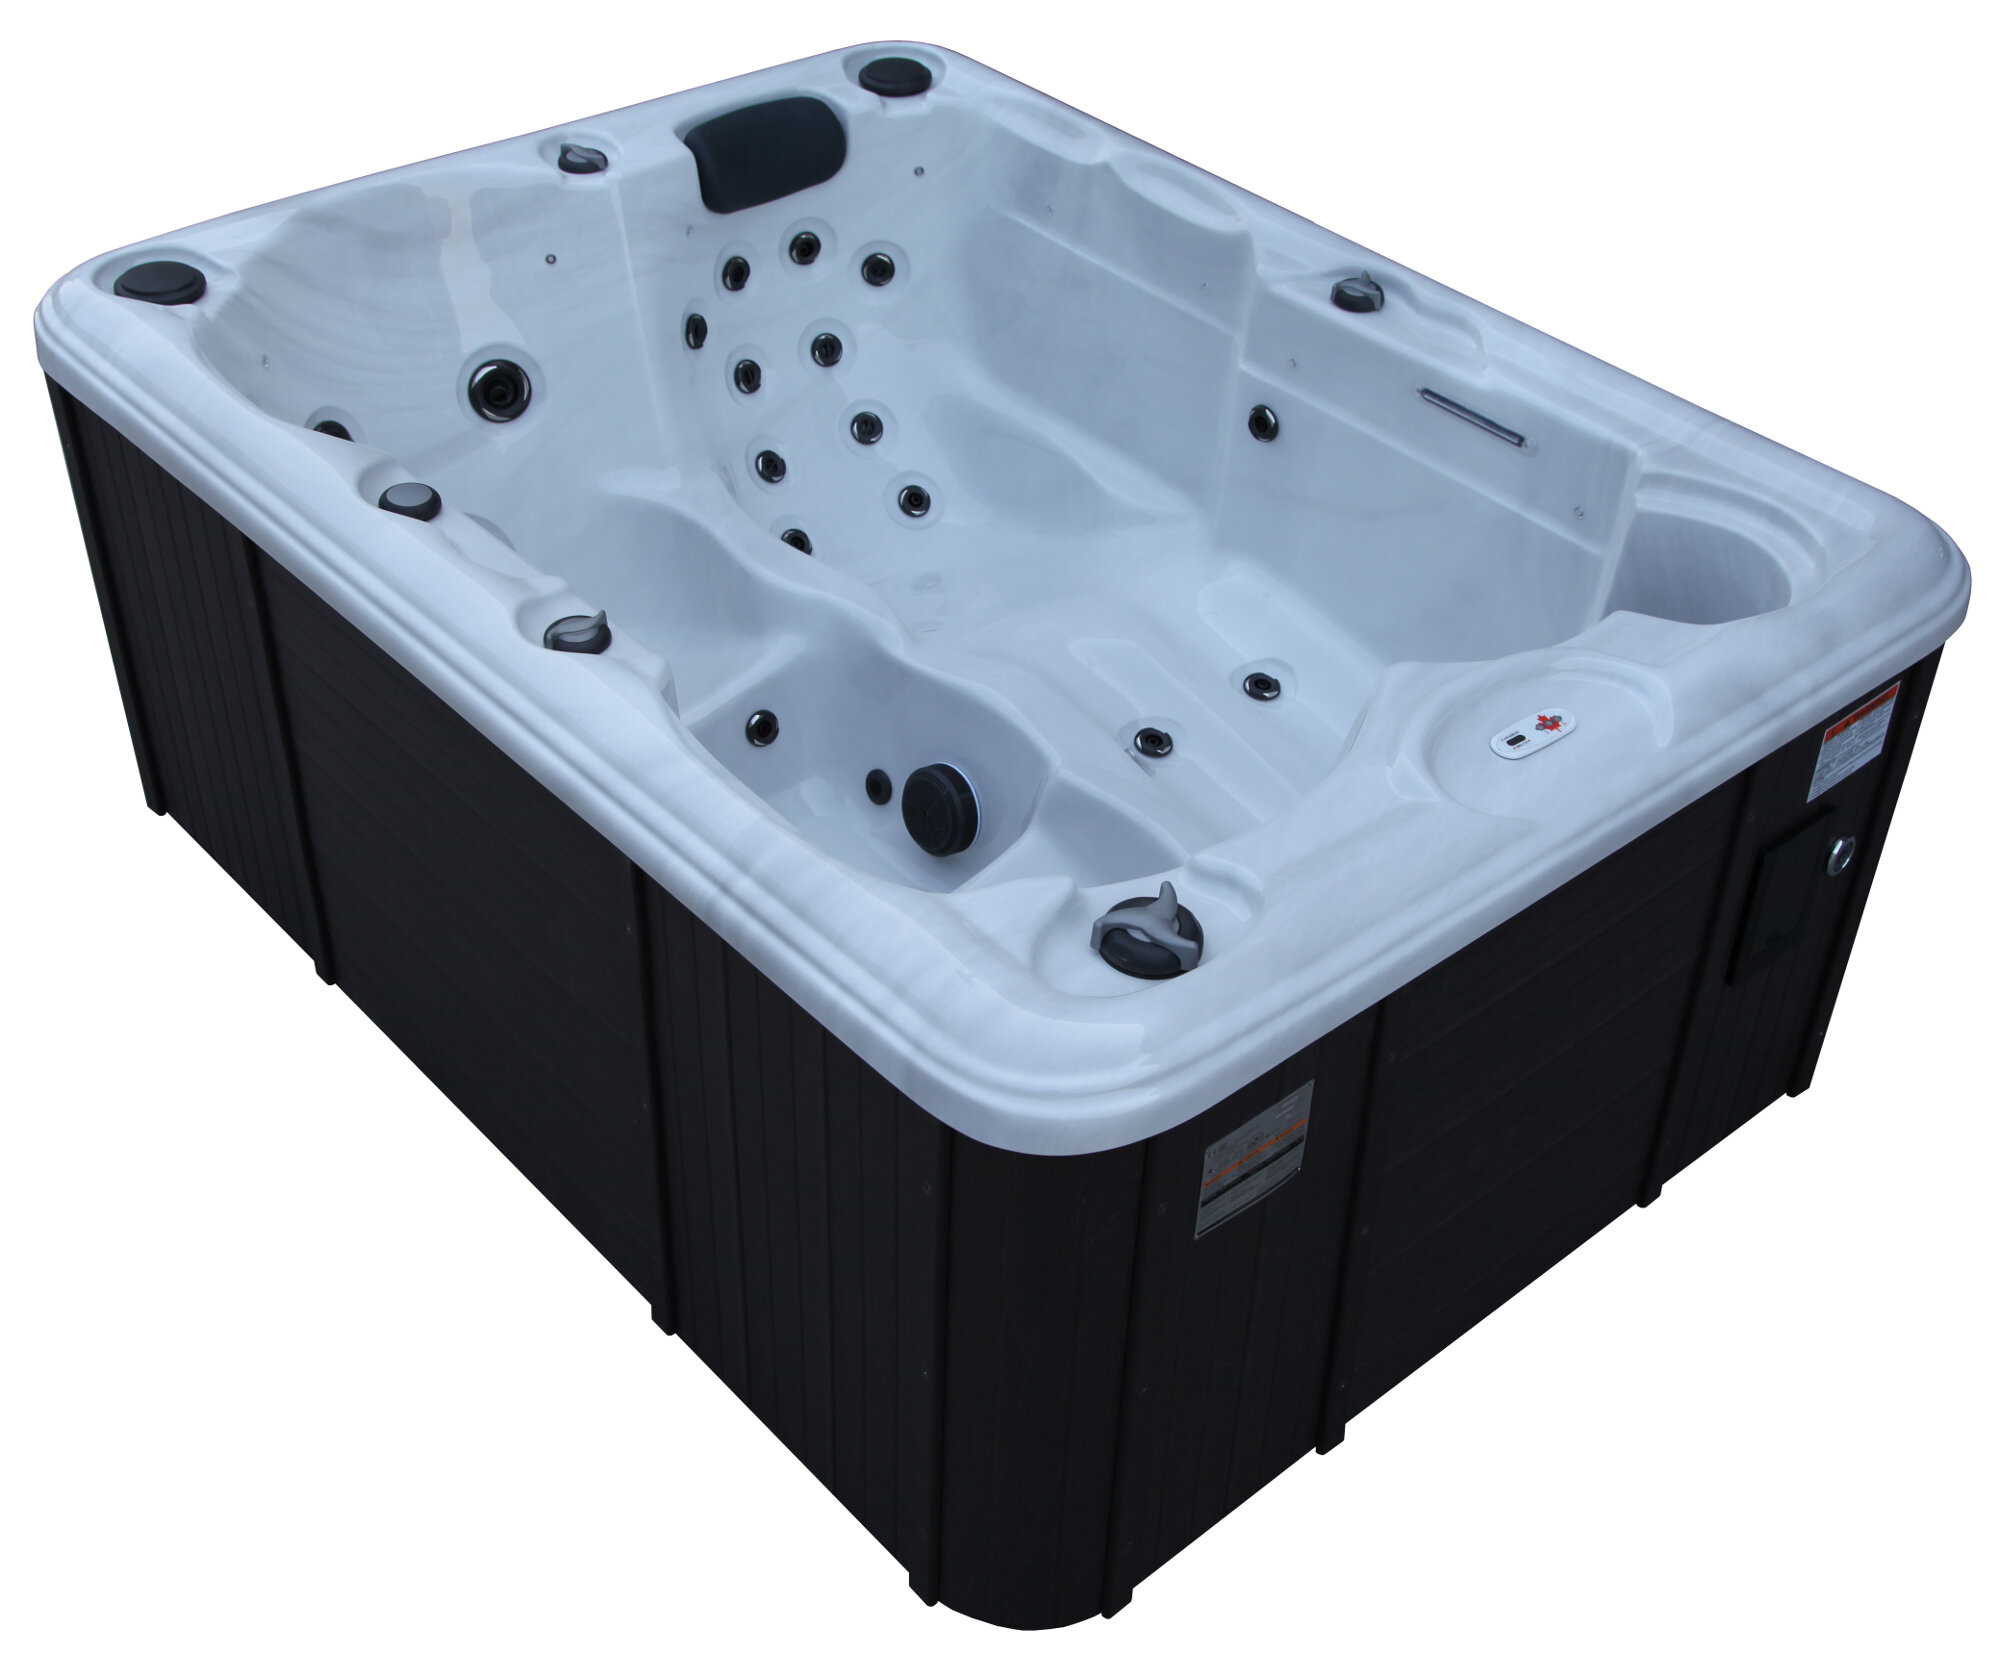 Details about canadian spa co quebec 4 person plug and play spa